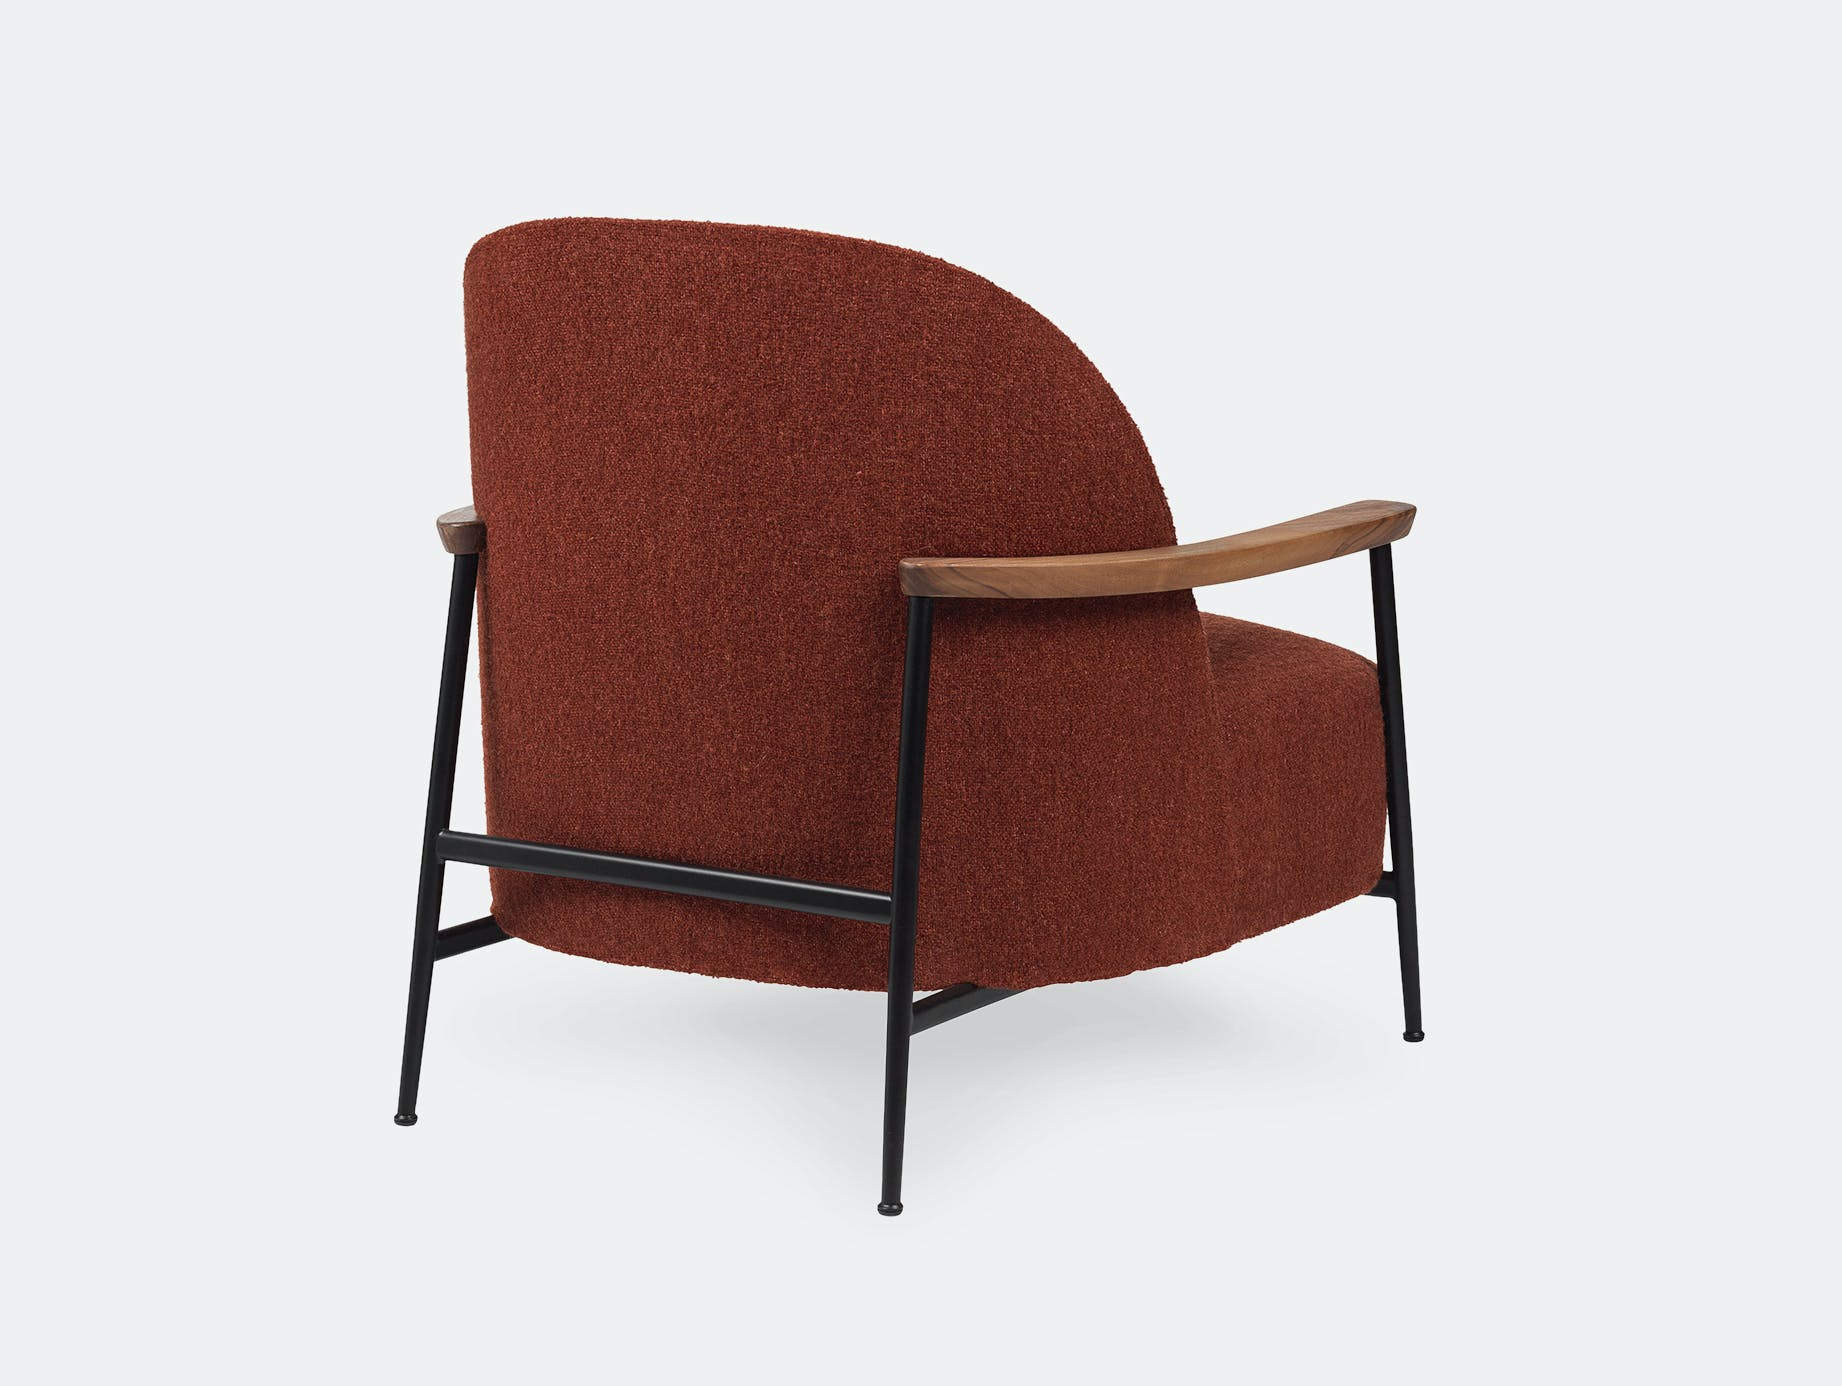 Gubi sejour lounge chair 3